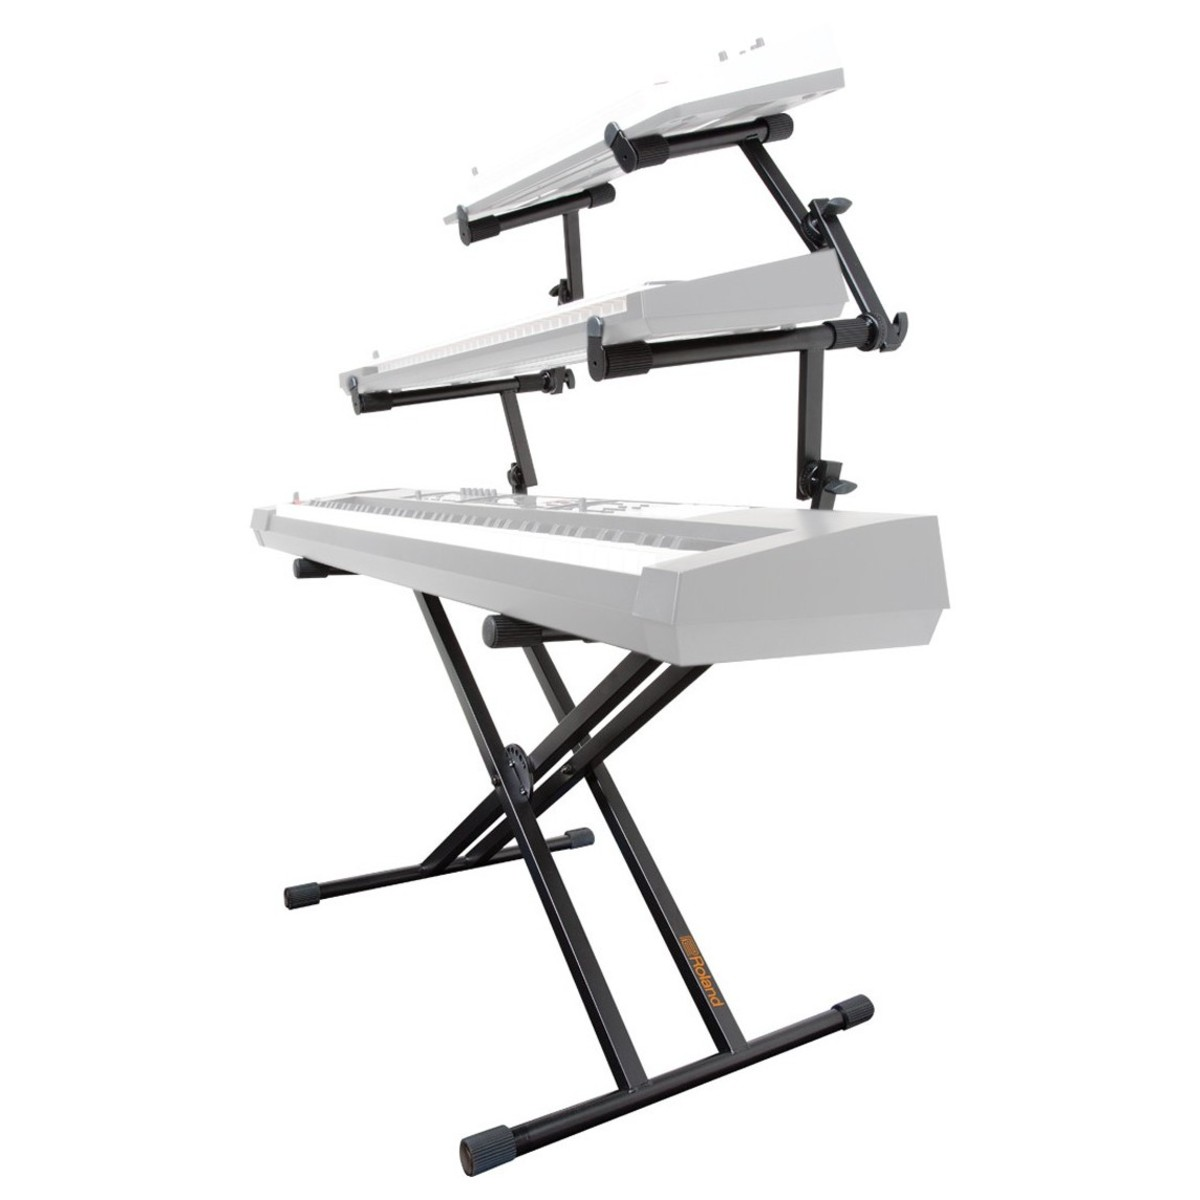 disc roland ks 32x double braced keyboard stand 3 tier at gear4music. Black Bedroom Furniture Sets. Home Design Ideas